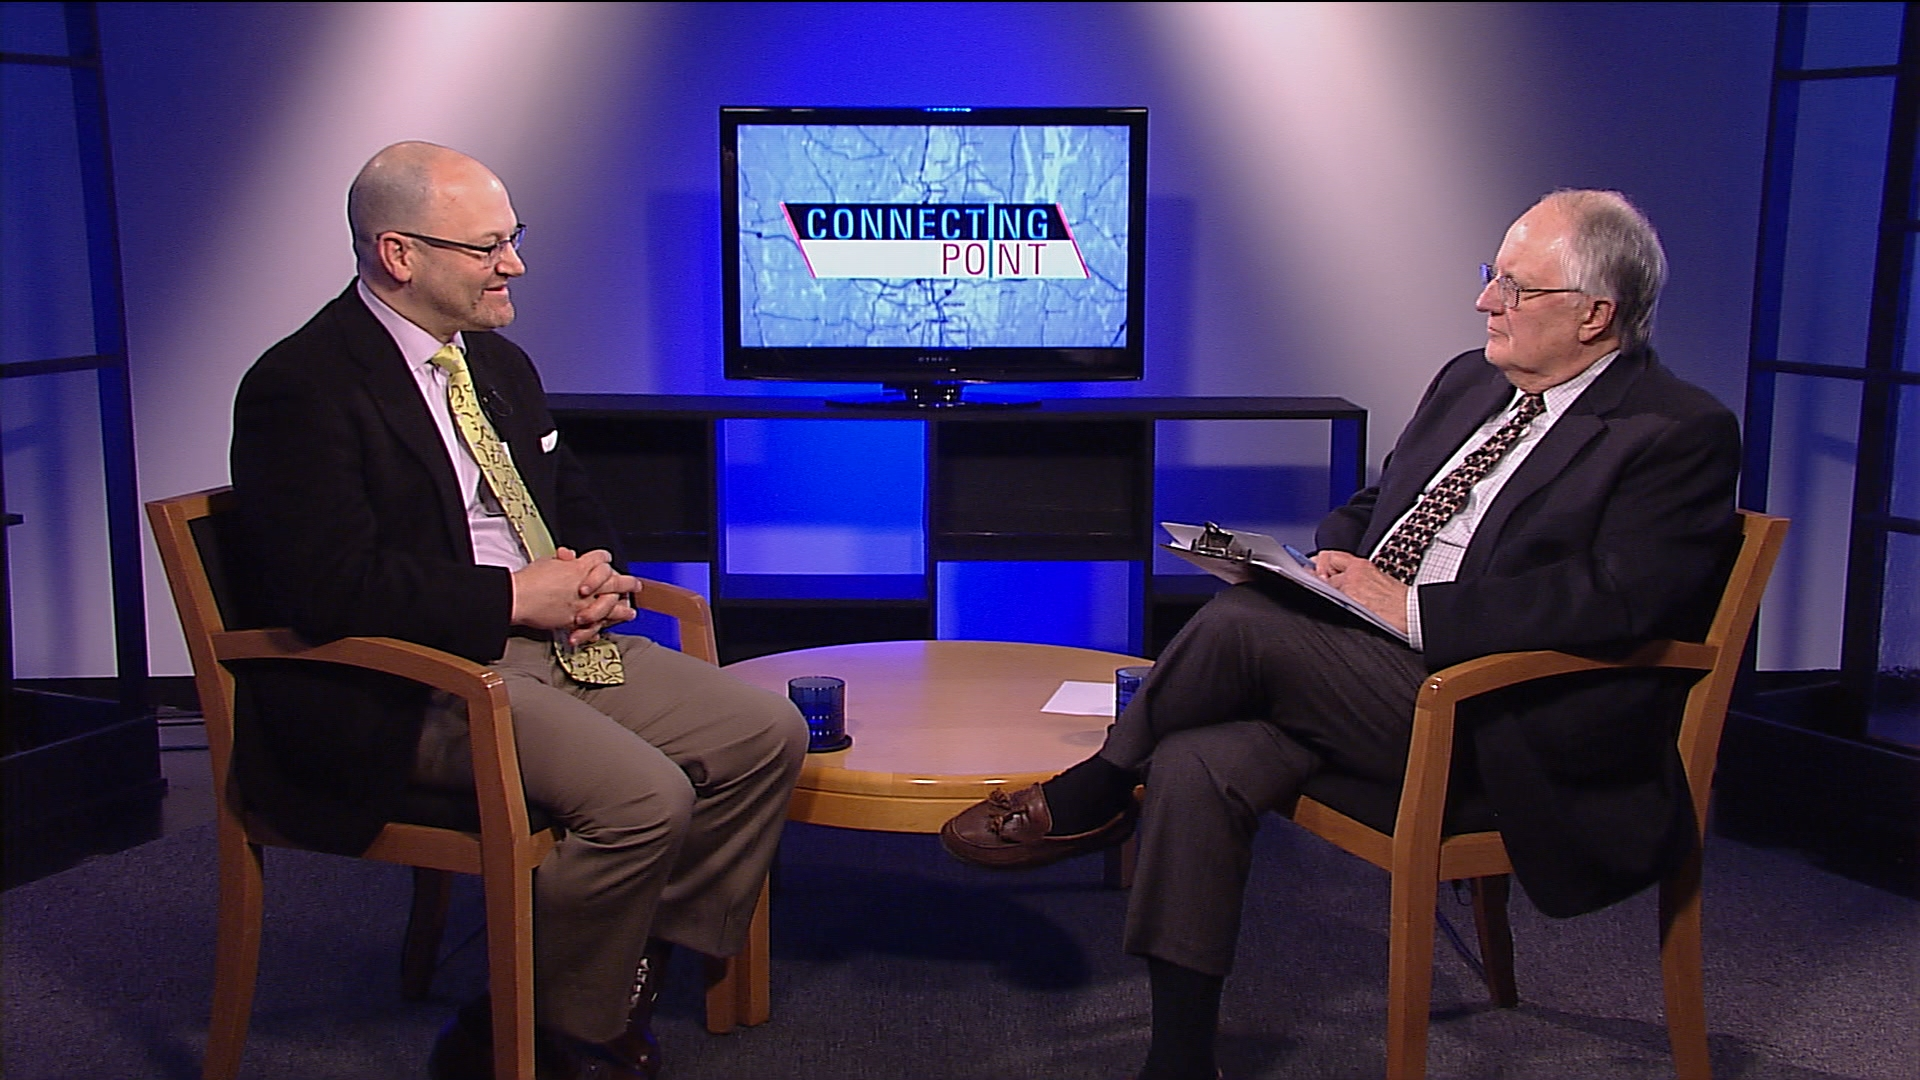 Baystate Medical Center's Dr. Peter Friedman discusses the negative impact he sees an ACA repeal having on the fight against opioid addiction.